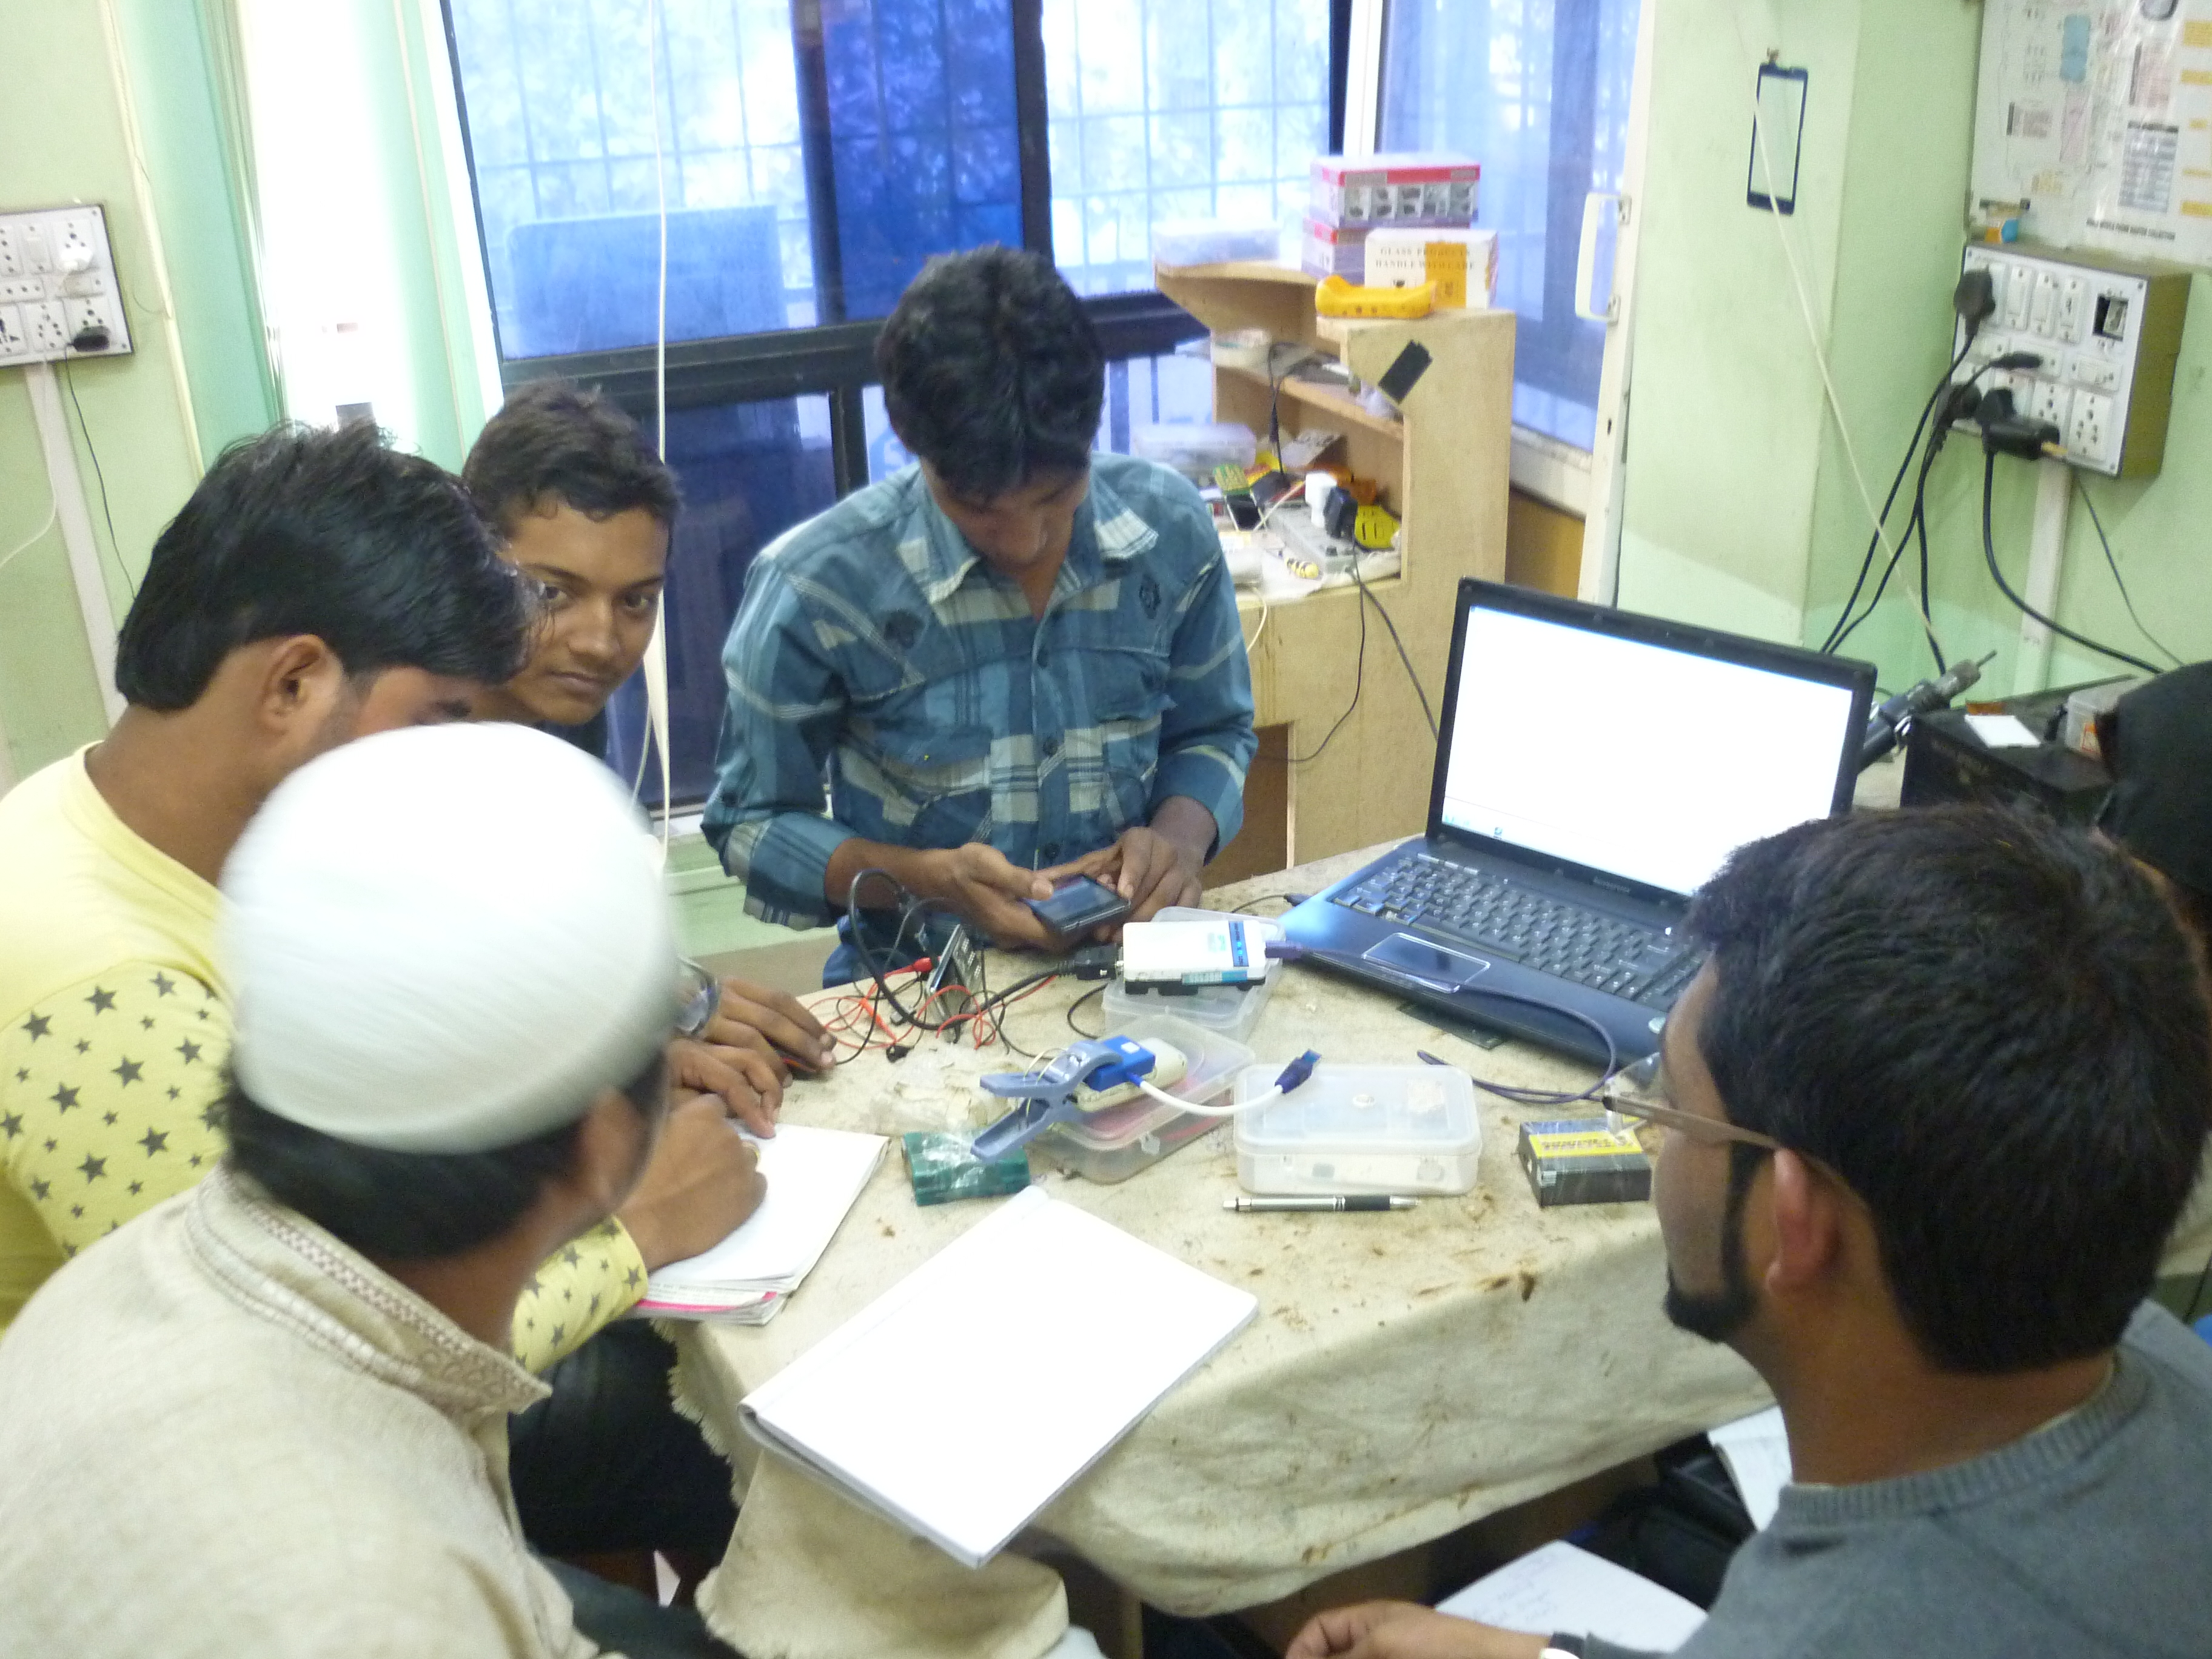 mobile repairing training